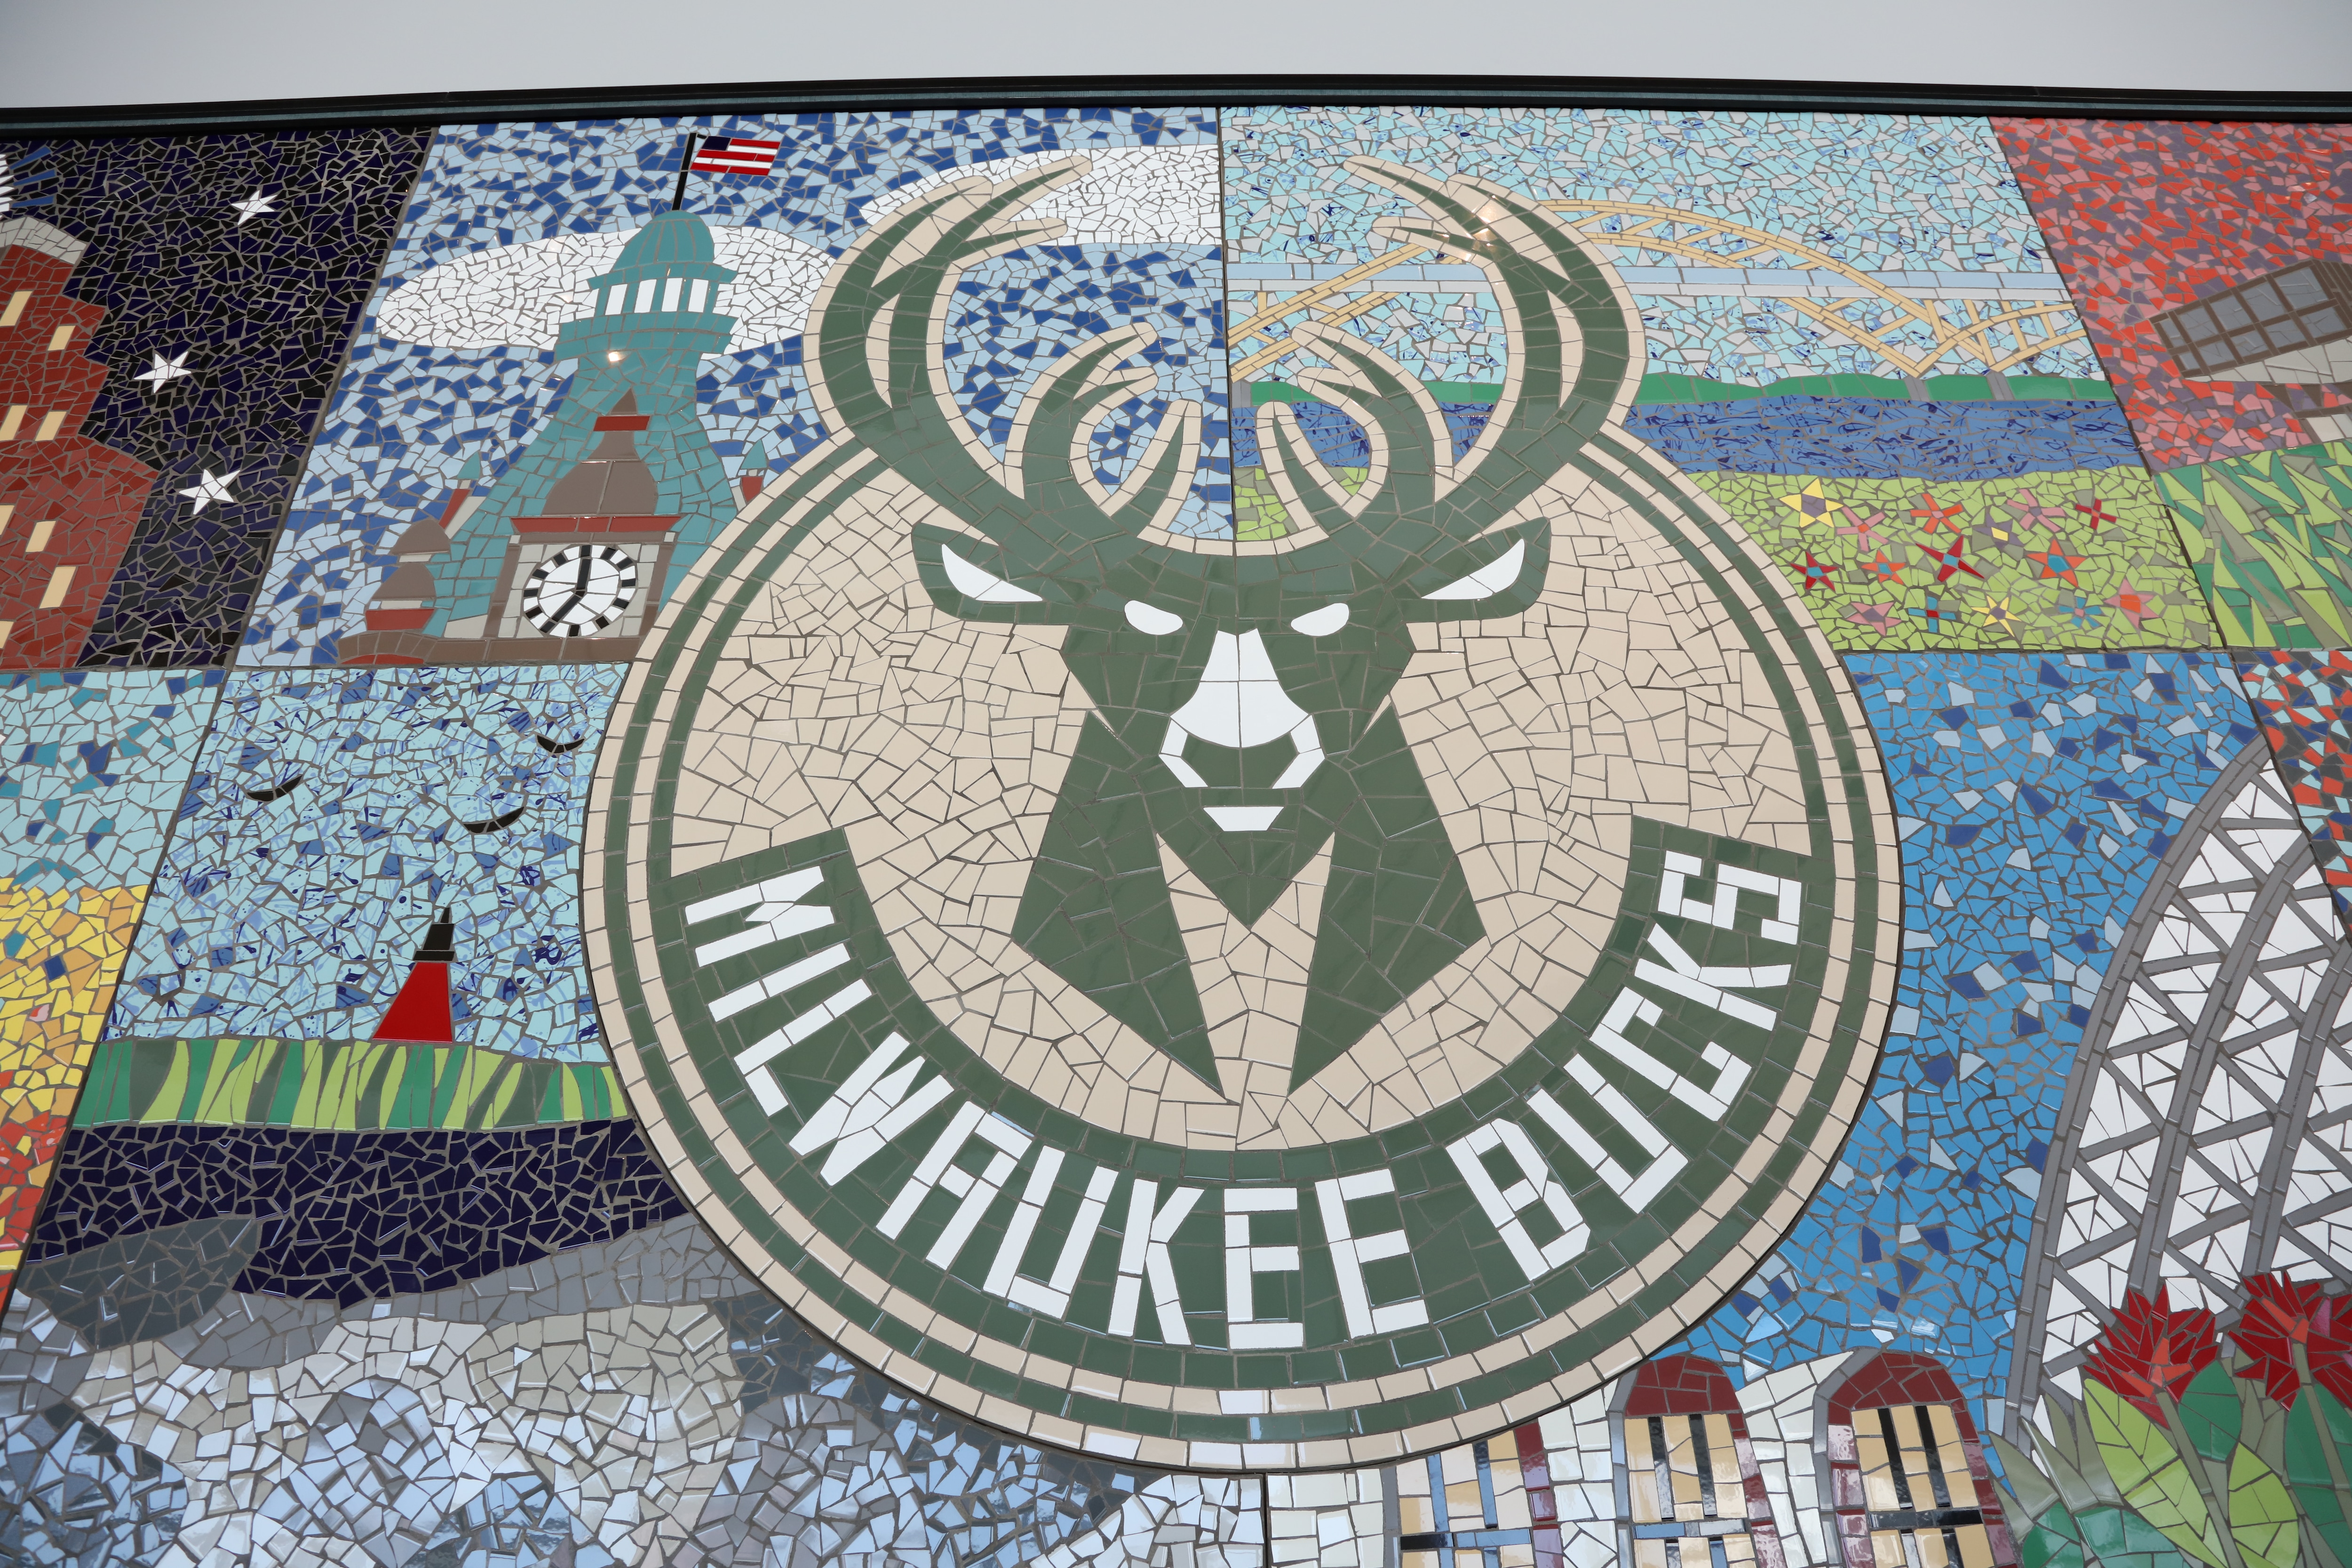 The Milwaukee Bucks Art Collection Inside Fiserv Forum